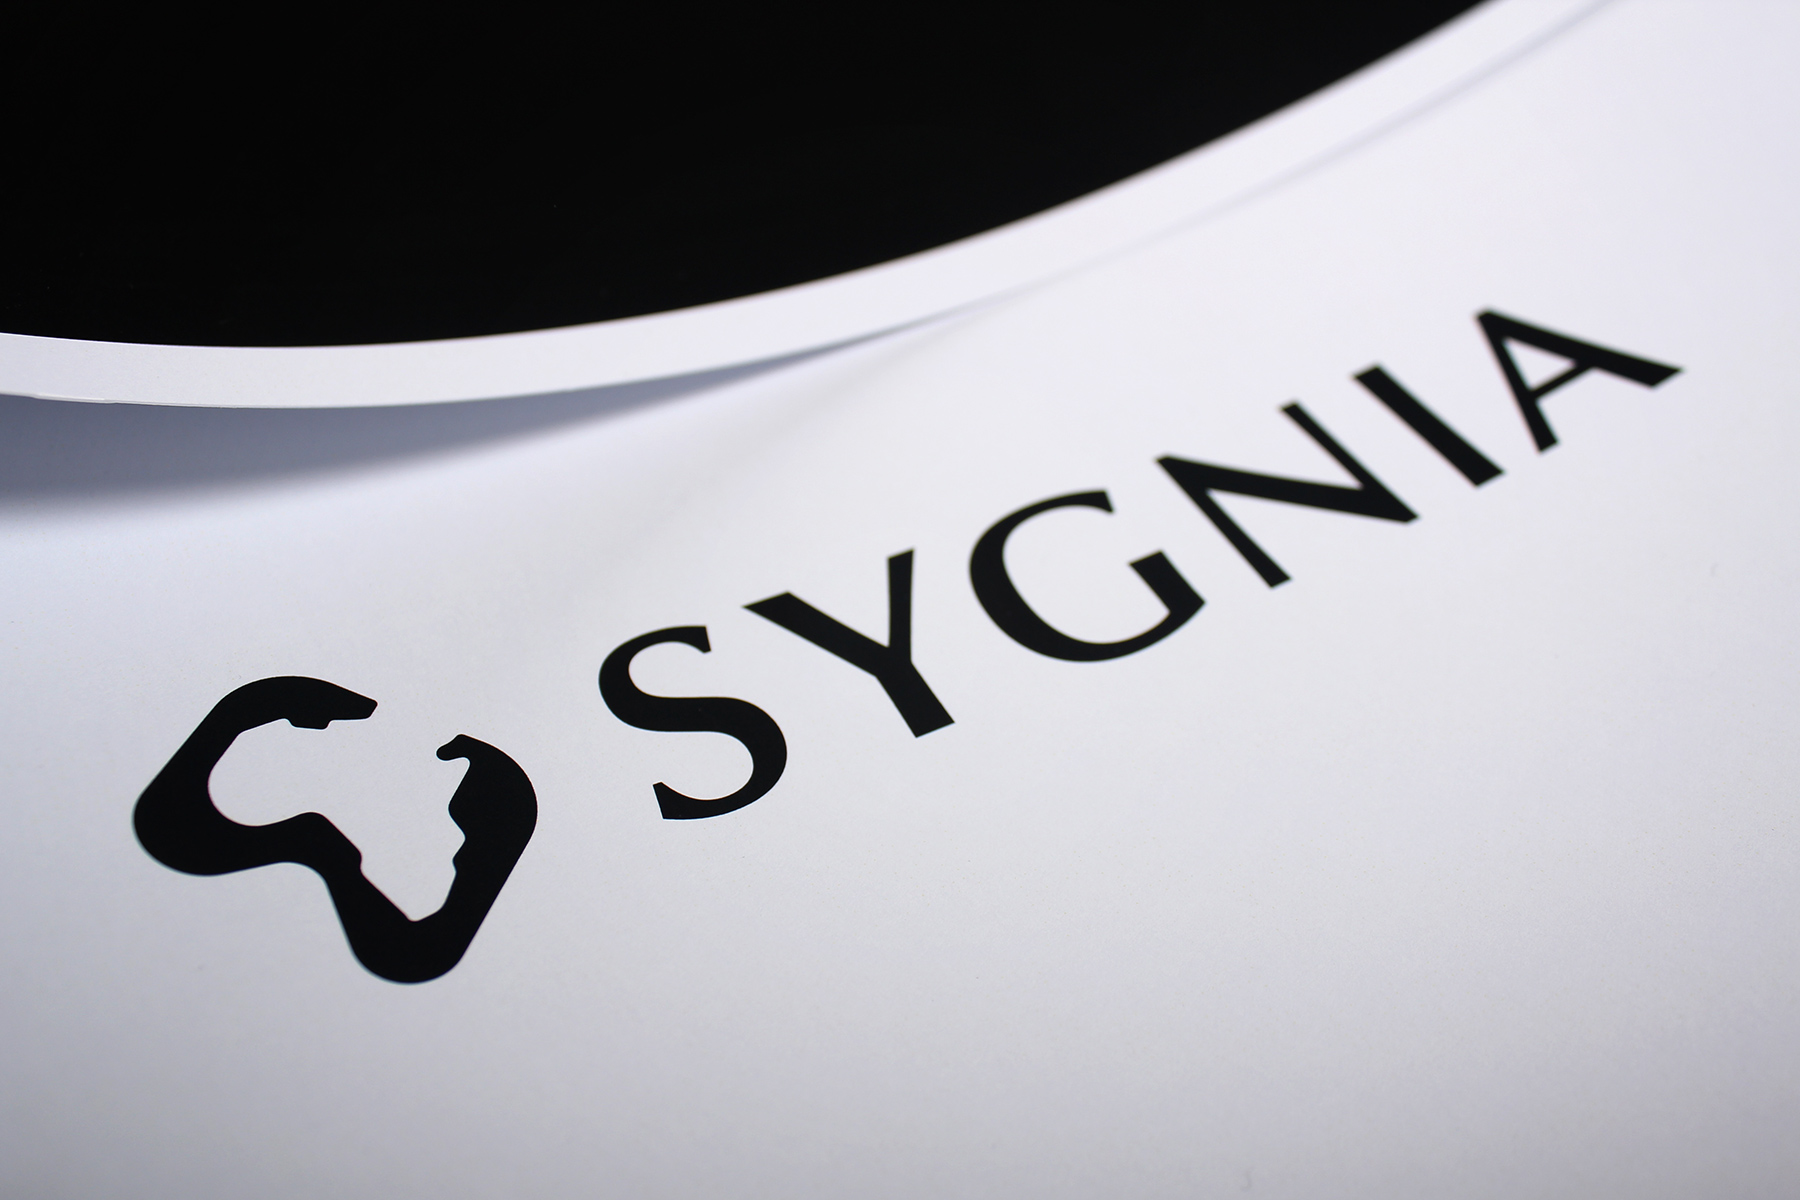 The branding utilises a unique silhouette of Africa combined with the sigma symbol - A homage to the cumulative total within spreadsheets. This ties in with the brand positioning, 'The sum of all things'.